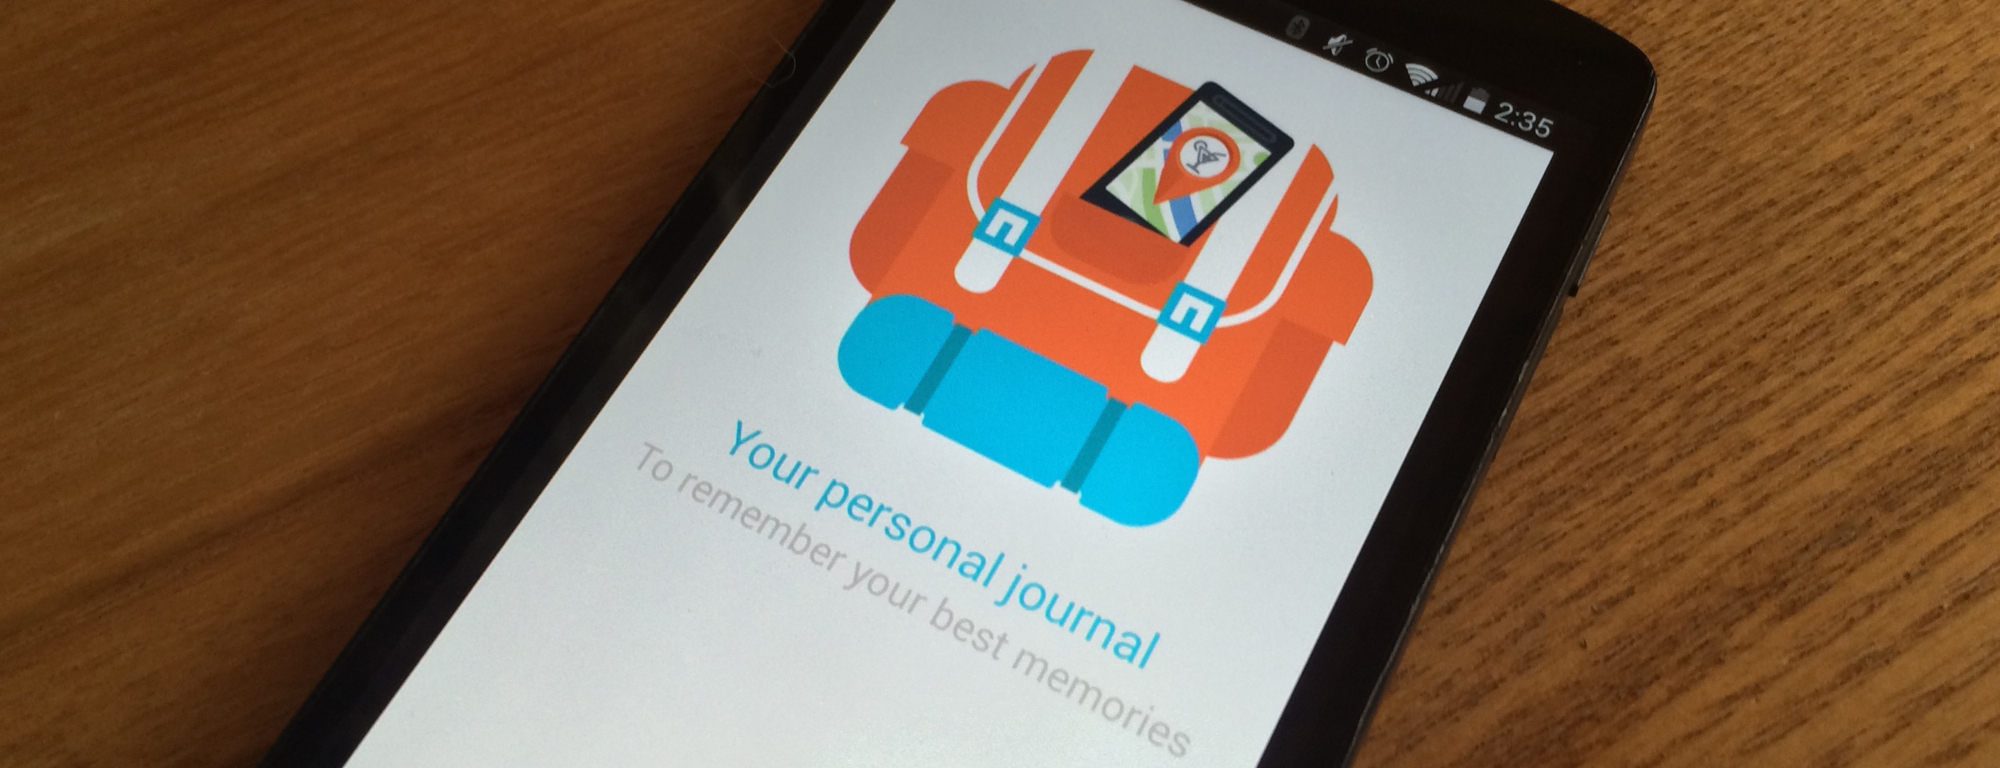 Automatic Diary App Rove Hits Android